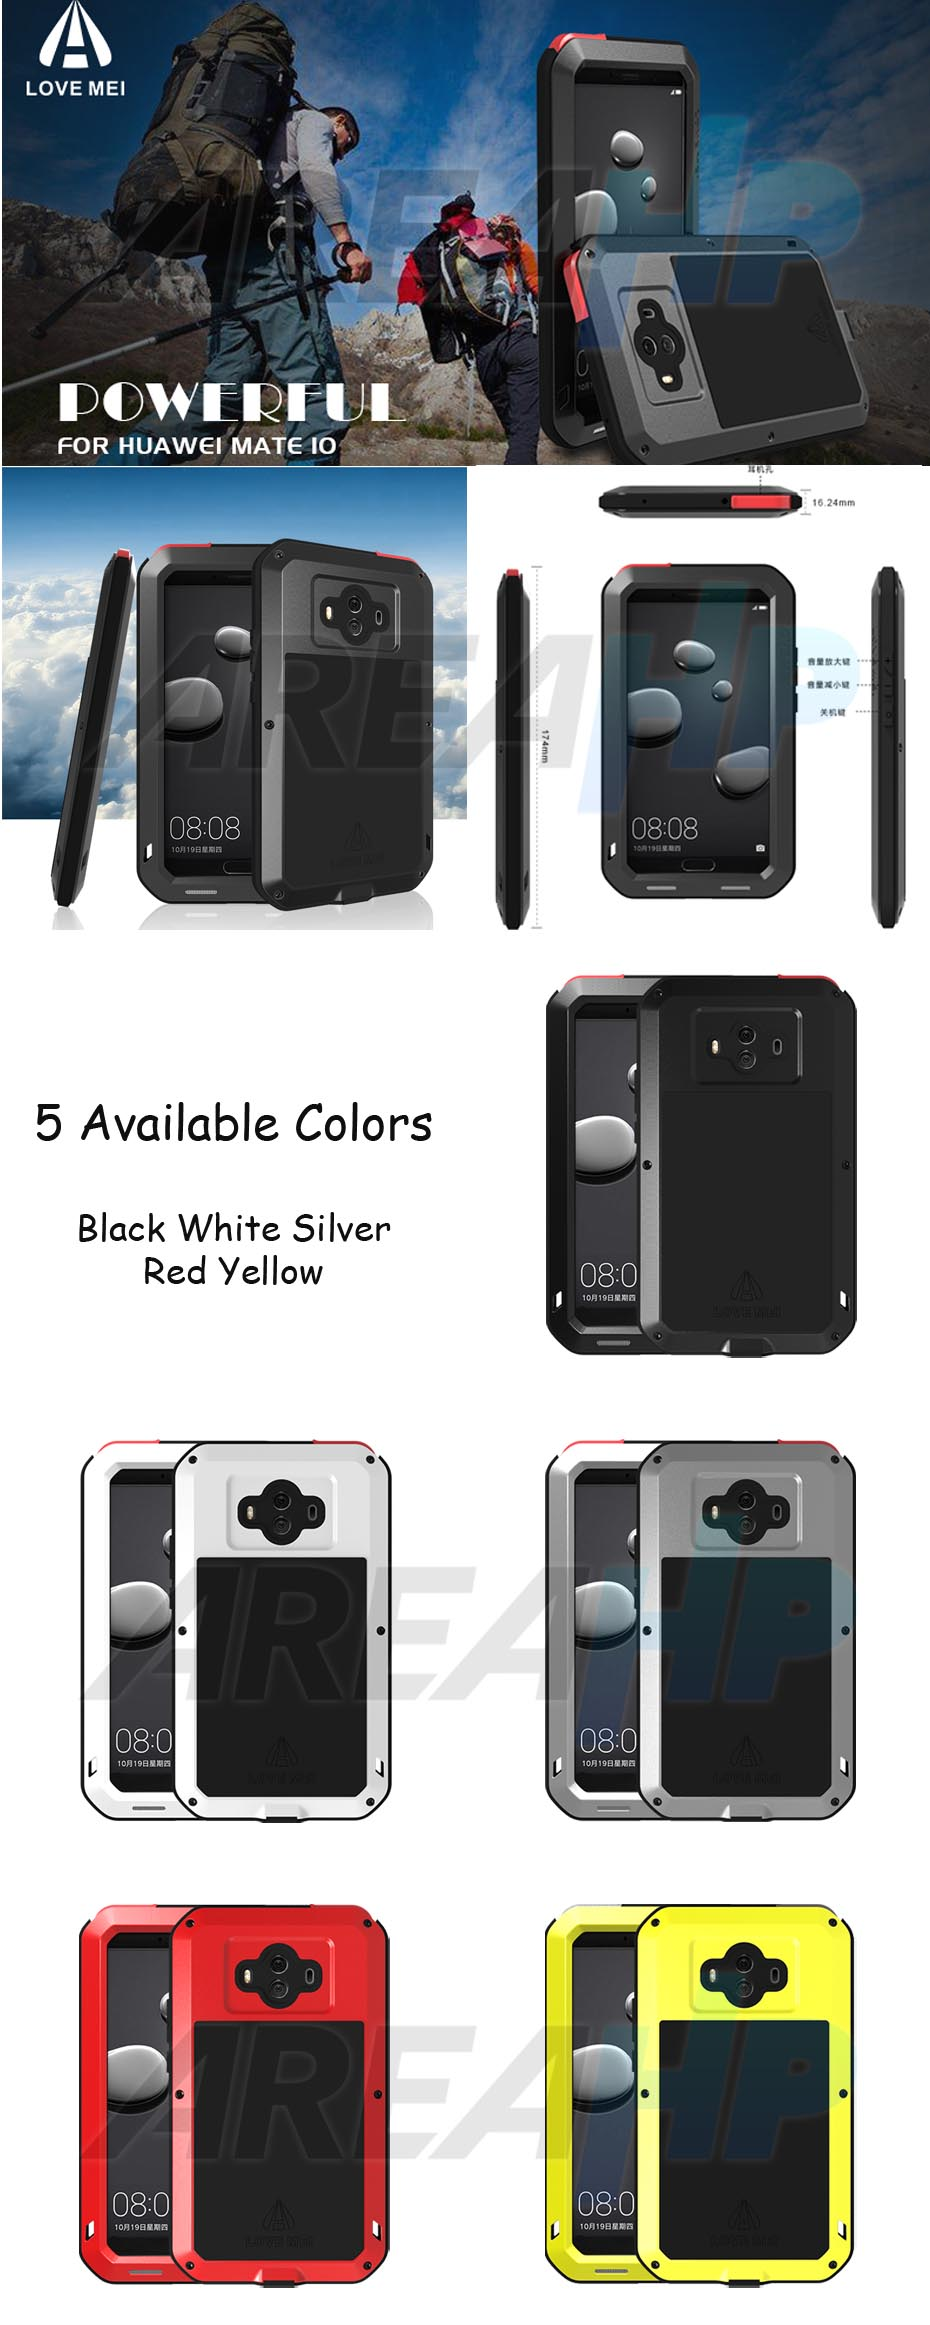 Love Mei Powerful Case for Huawei Mate 10 Overview